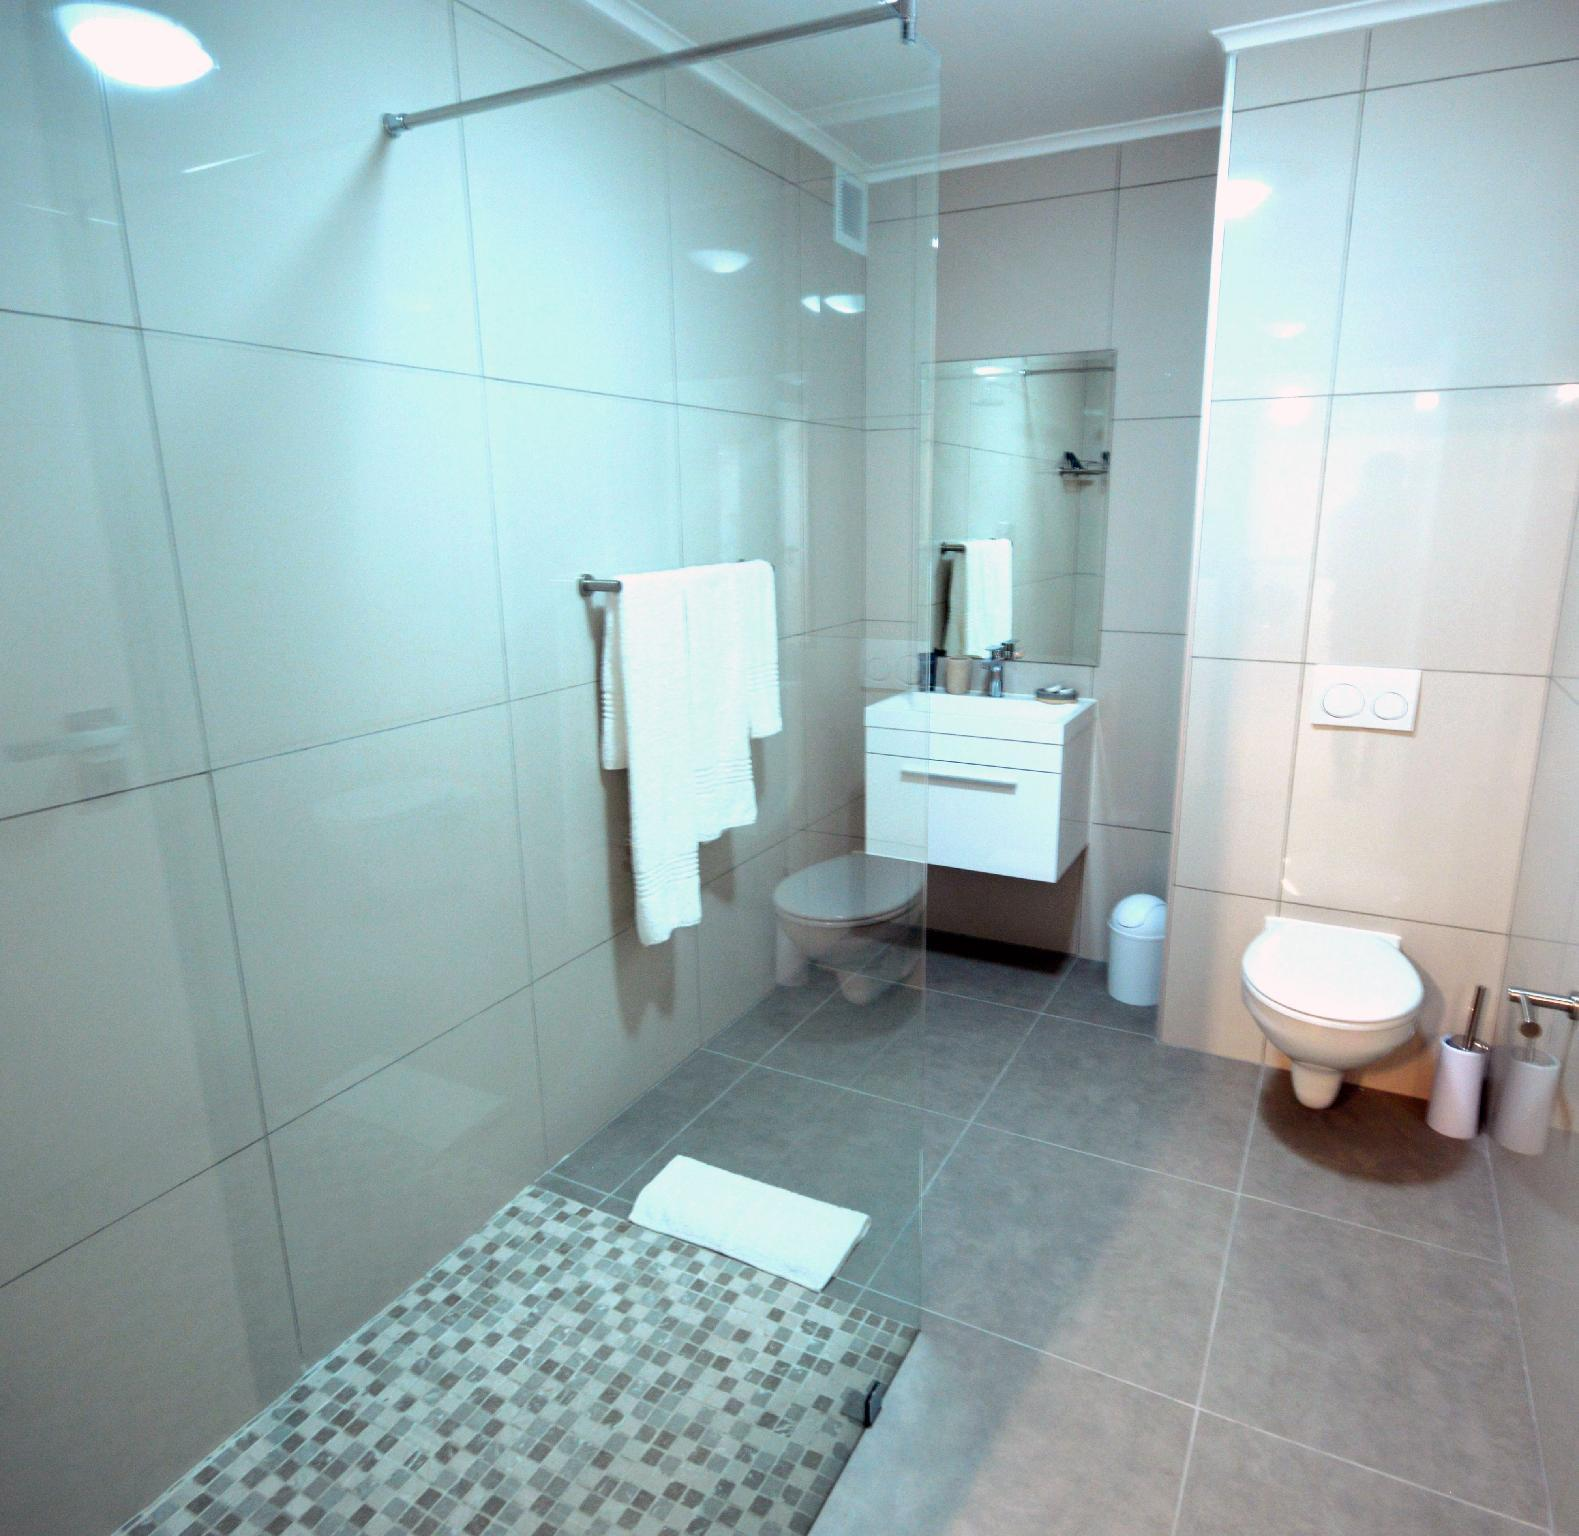 Paragon Apartments: Best Price On The Paragon Luxury Apartments In Cape Town